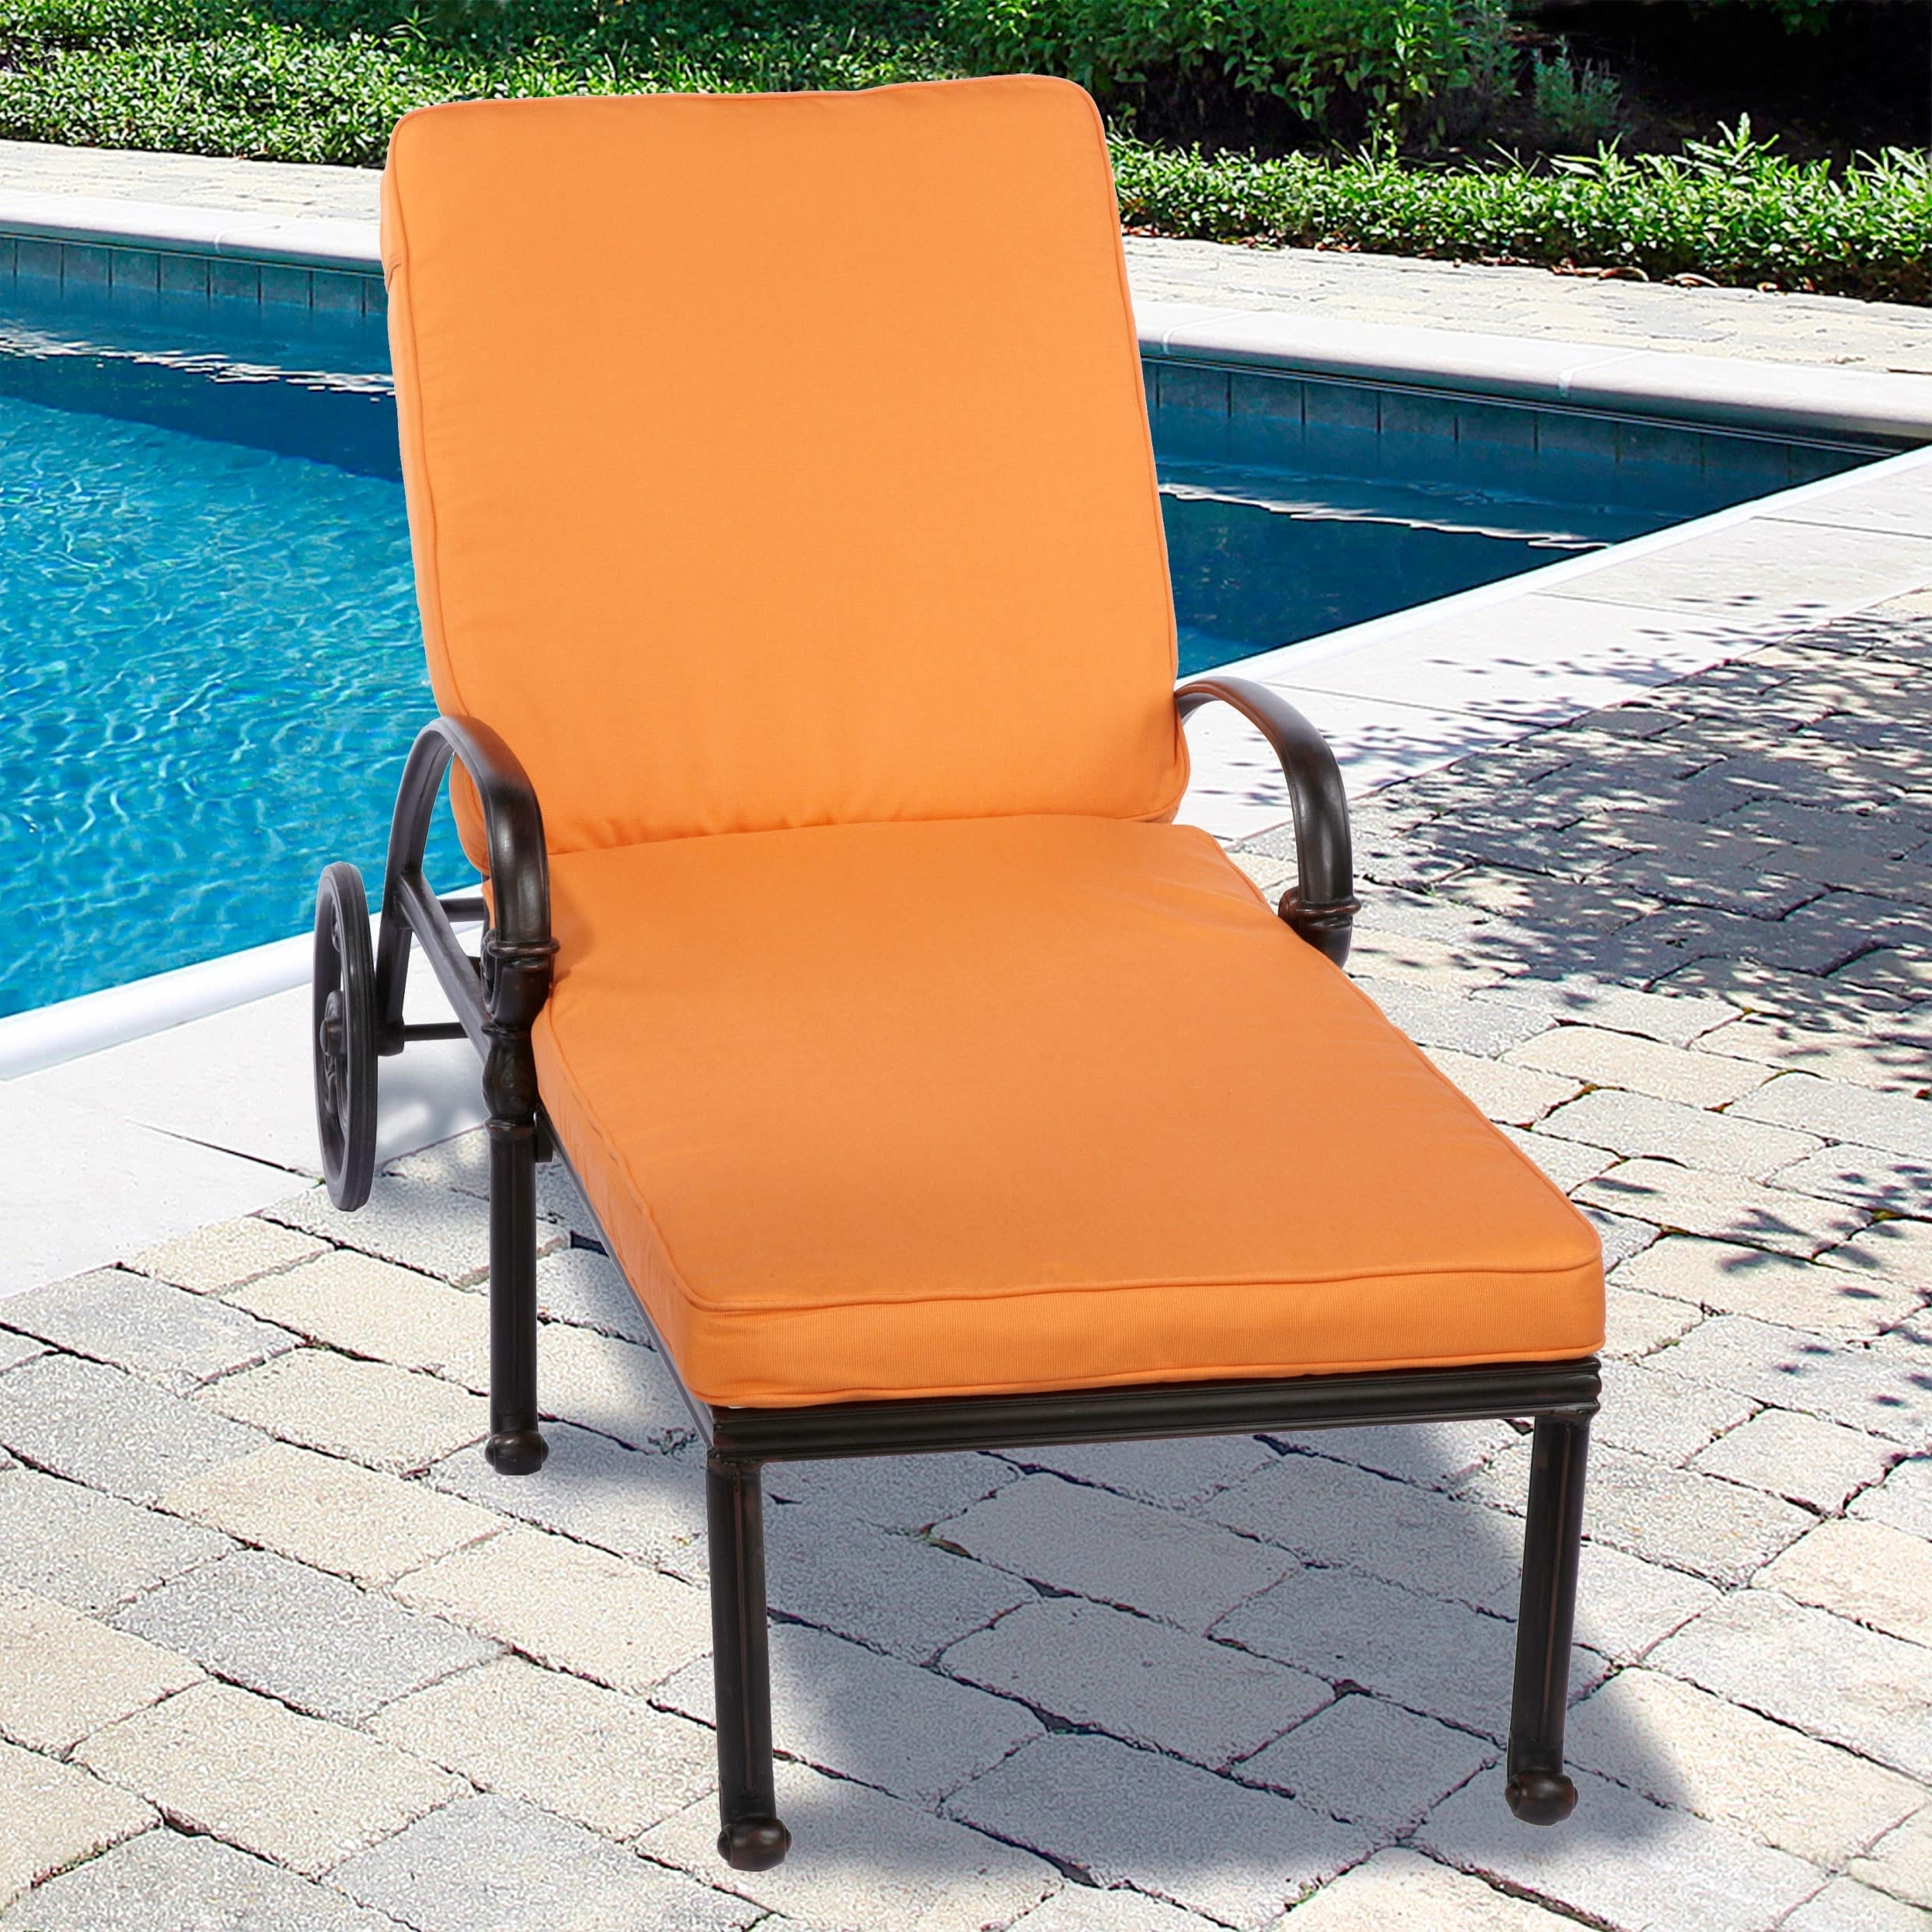 Preferred Cheap Chaise Lounge Cushions Regarding Indoor/ Outdoor 25 Inch Chaise Lounge Cushion With Stain Resistant (View 10 of 15)